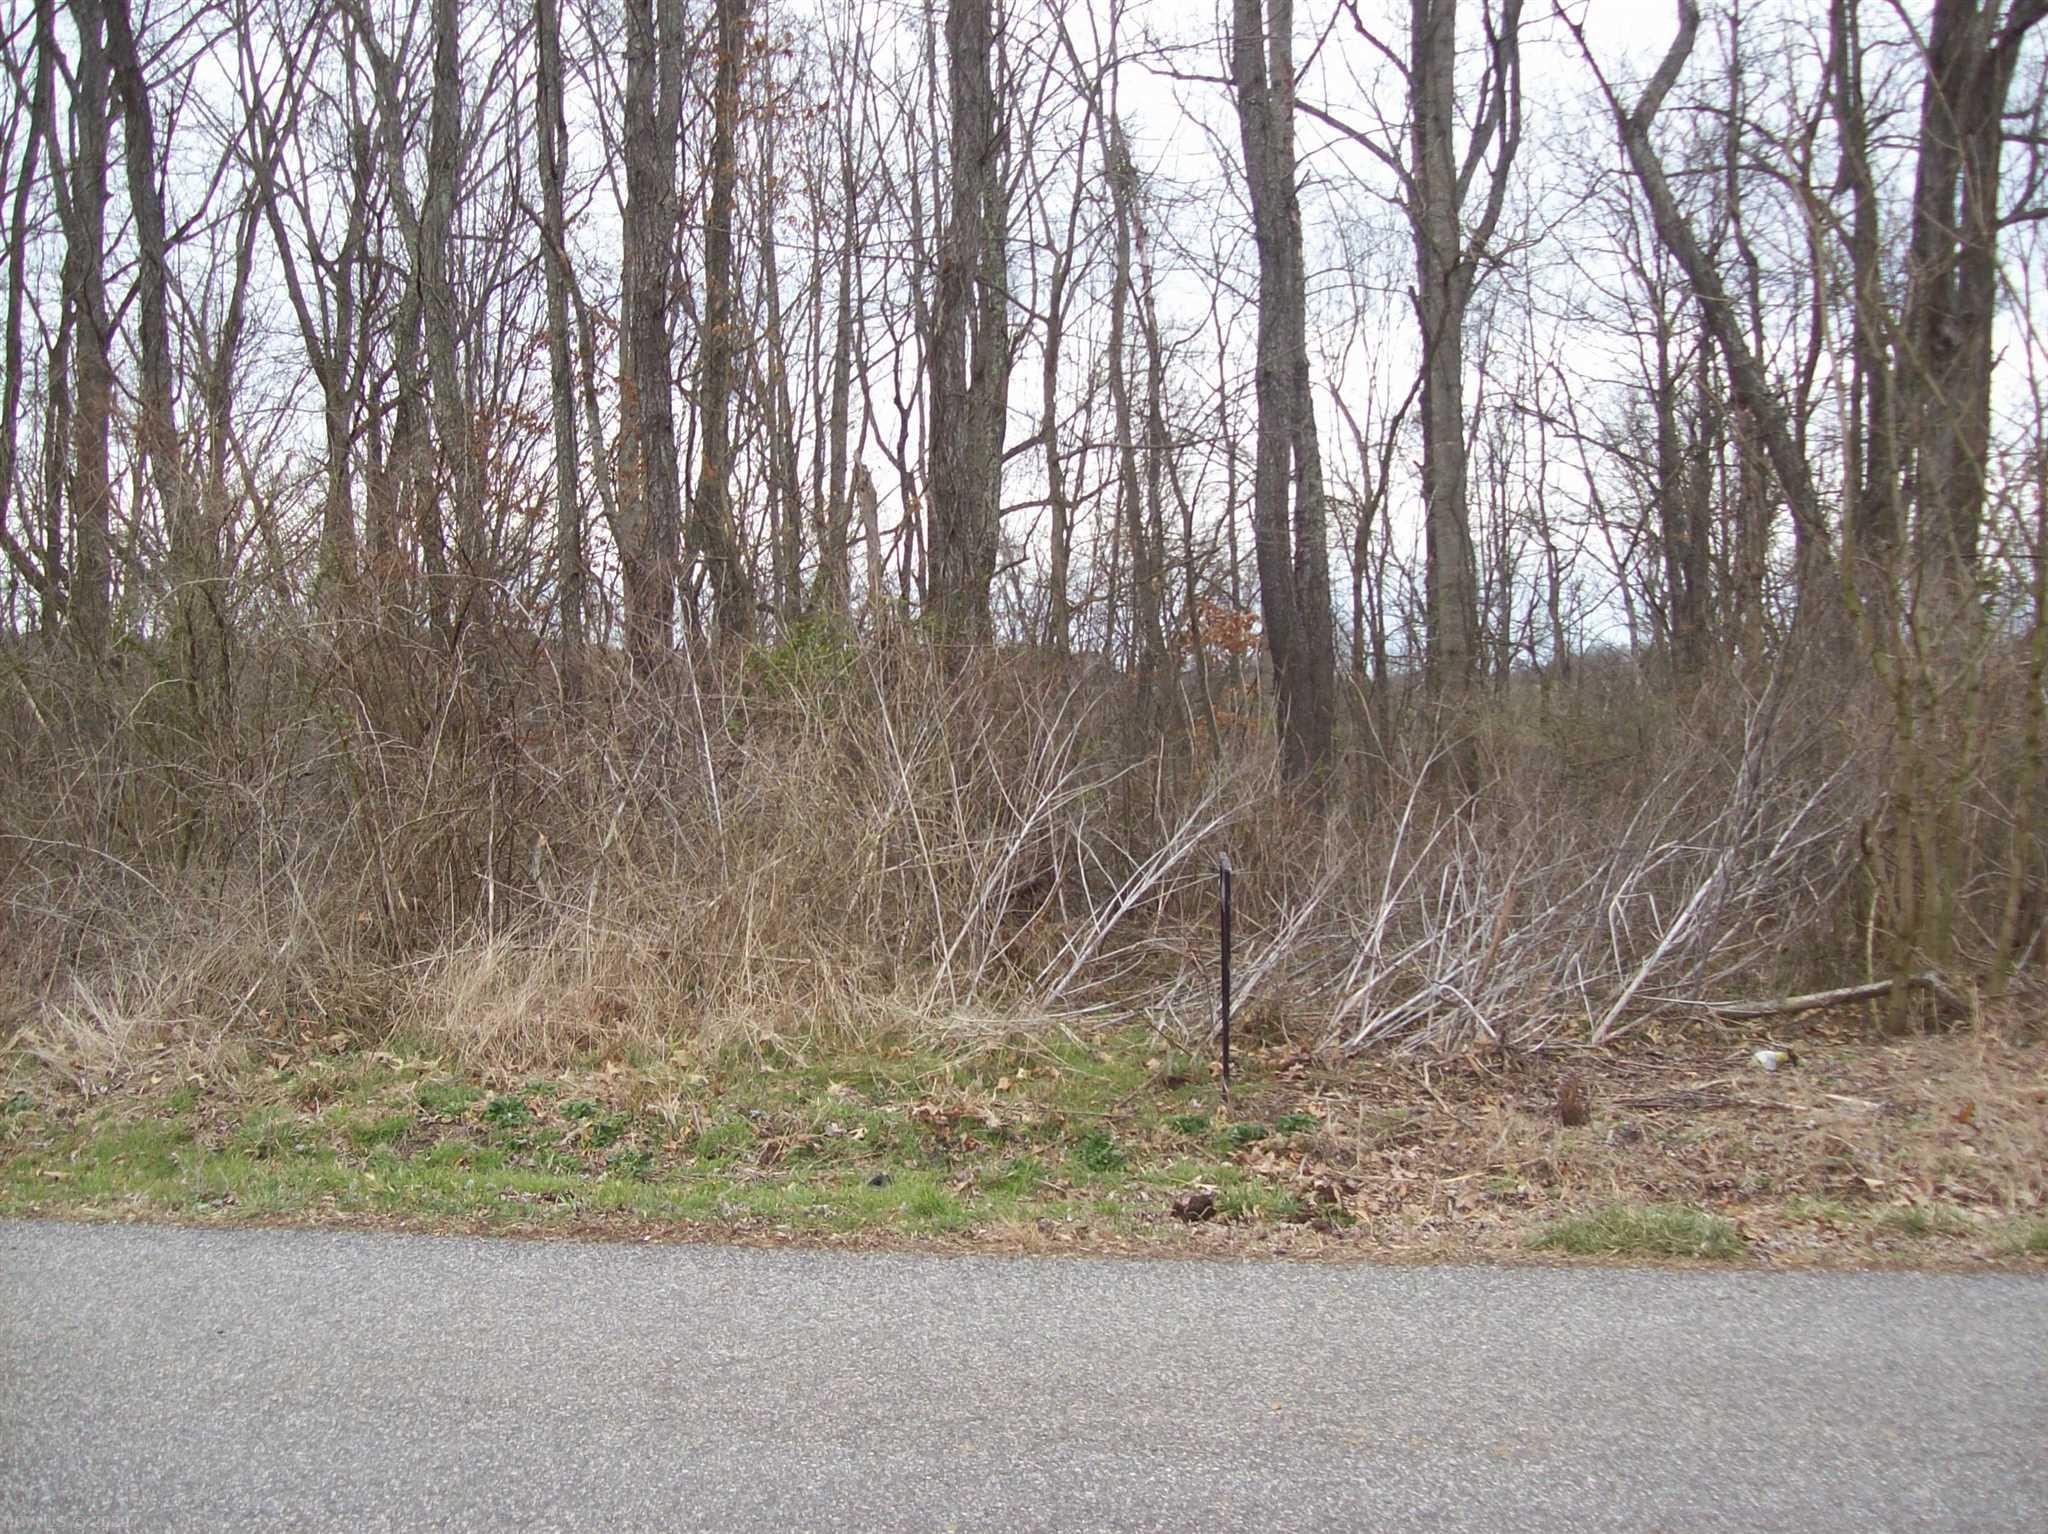 Looking for a lot to build on in Montgomery county this one acre lot on Easy St would be great for your new home and it only minutes from shopping, restaurant, I-81 and the schools.